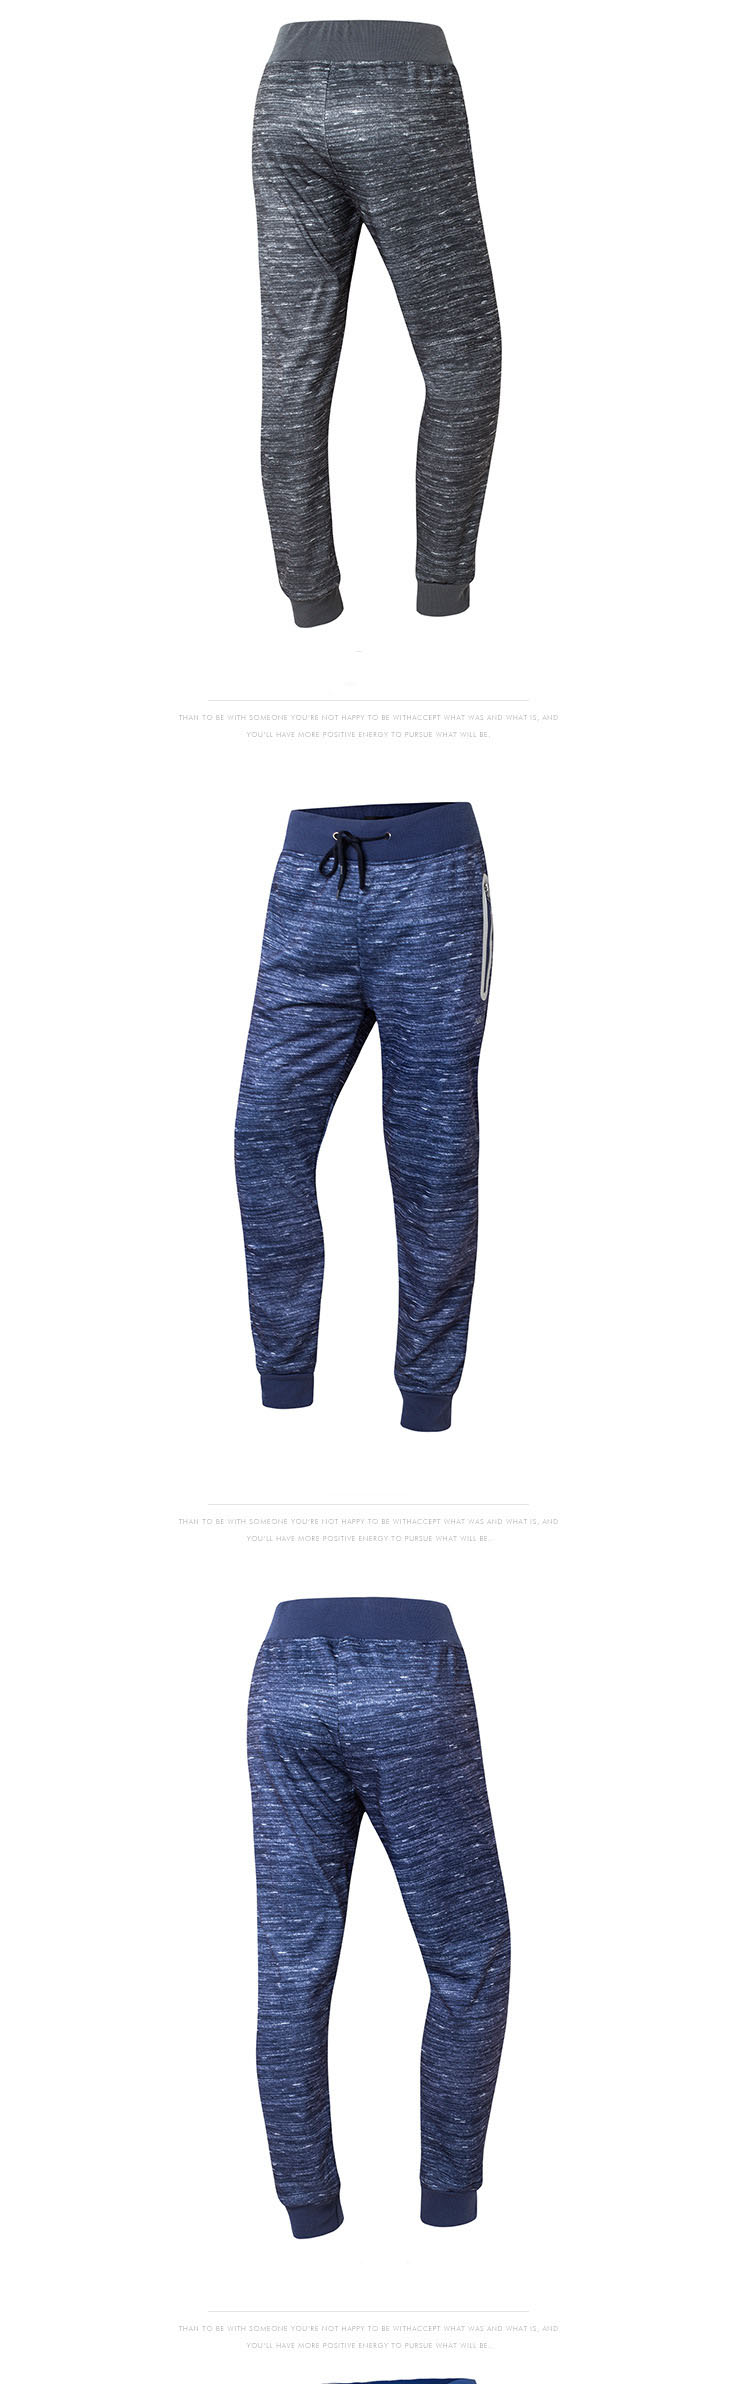 Aolamegs Men Casual Pants Fashion Mens Sweatpants High Quality Sportswear Outdoors Wear Joggers Pants Gyms Clothing Plus Size (7)